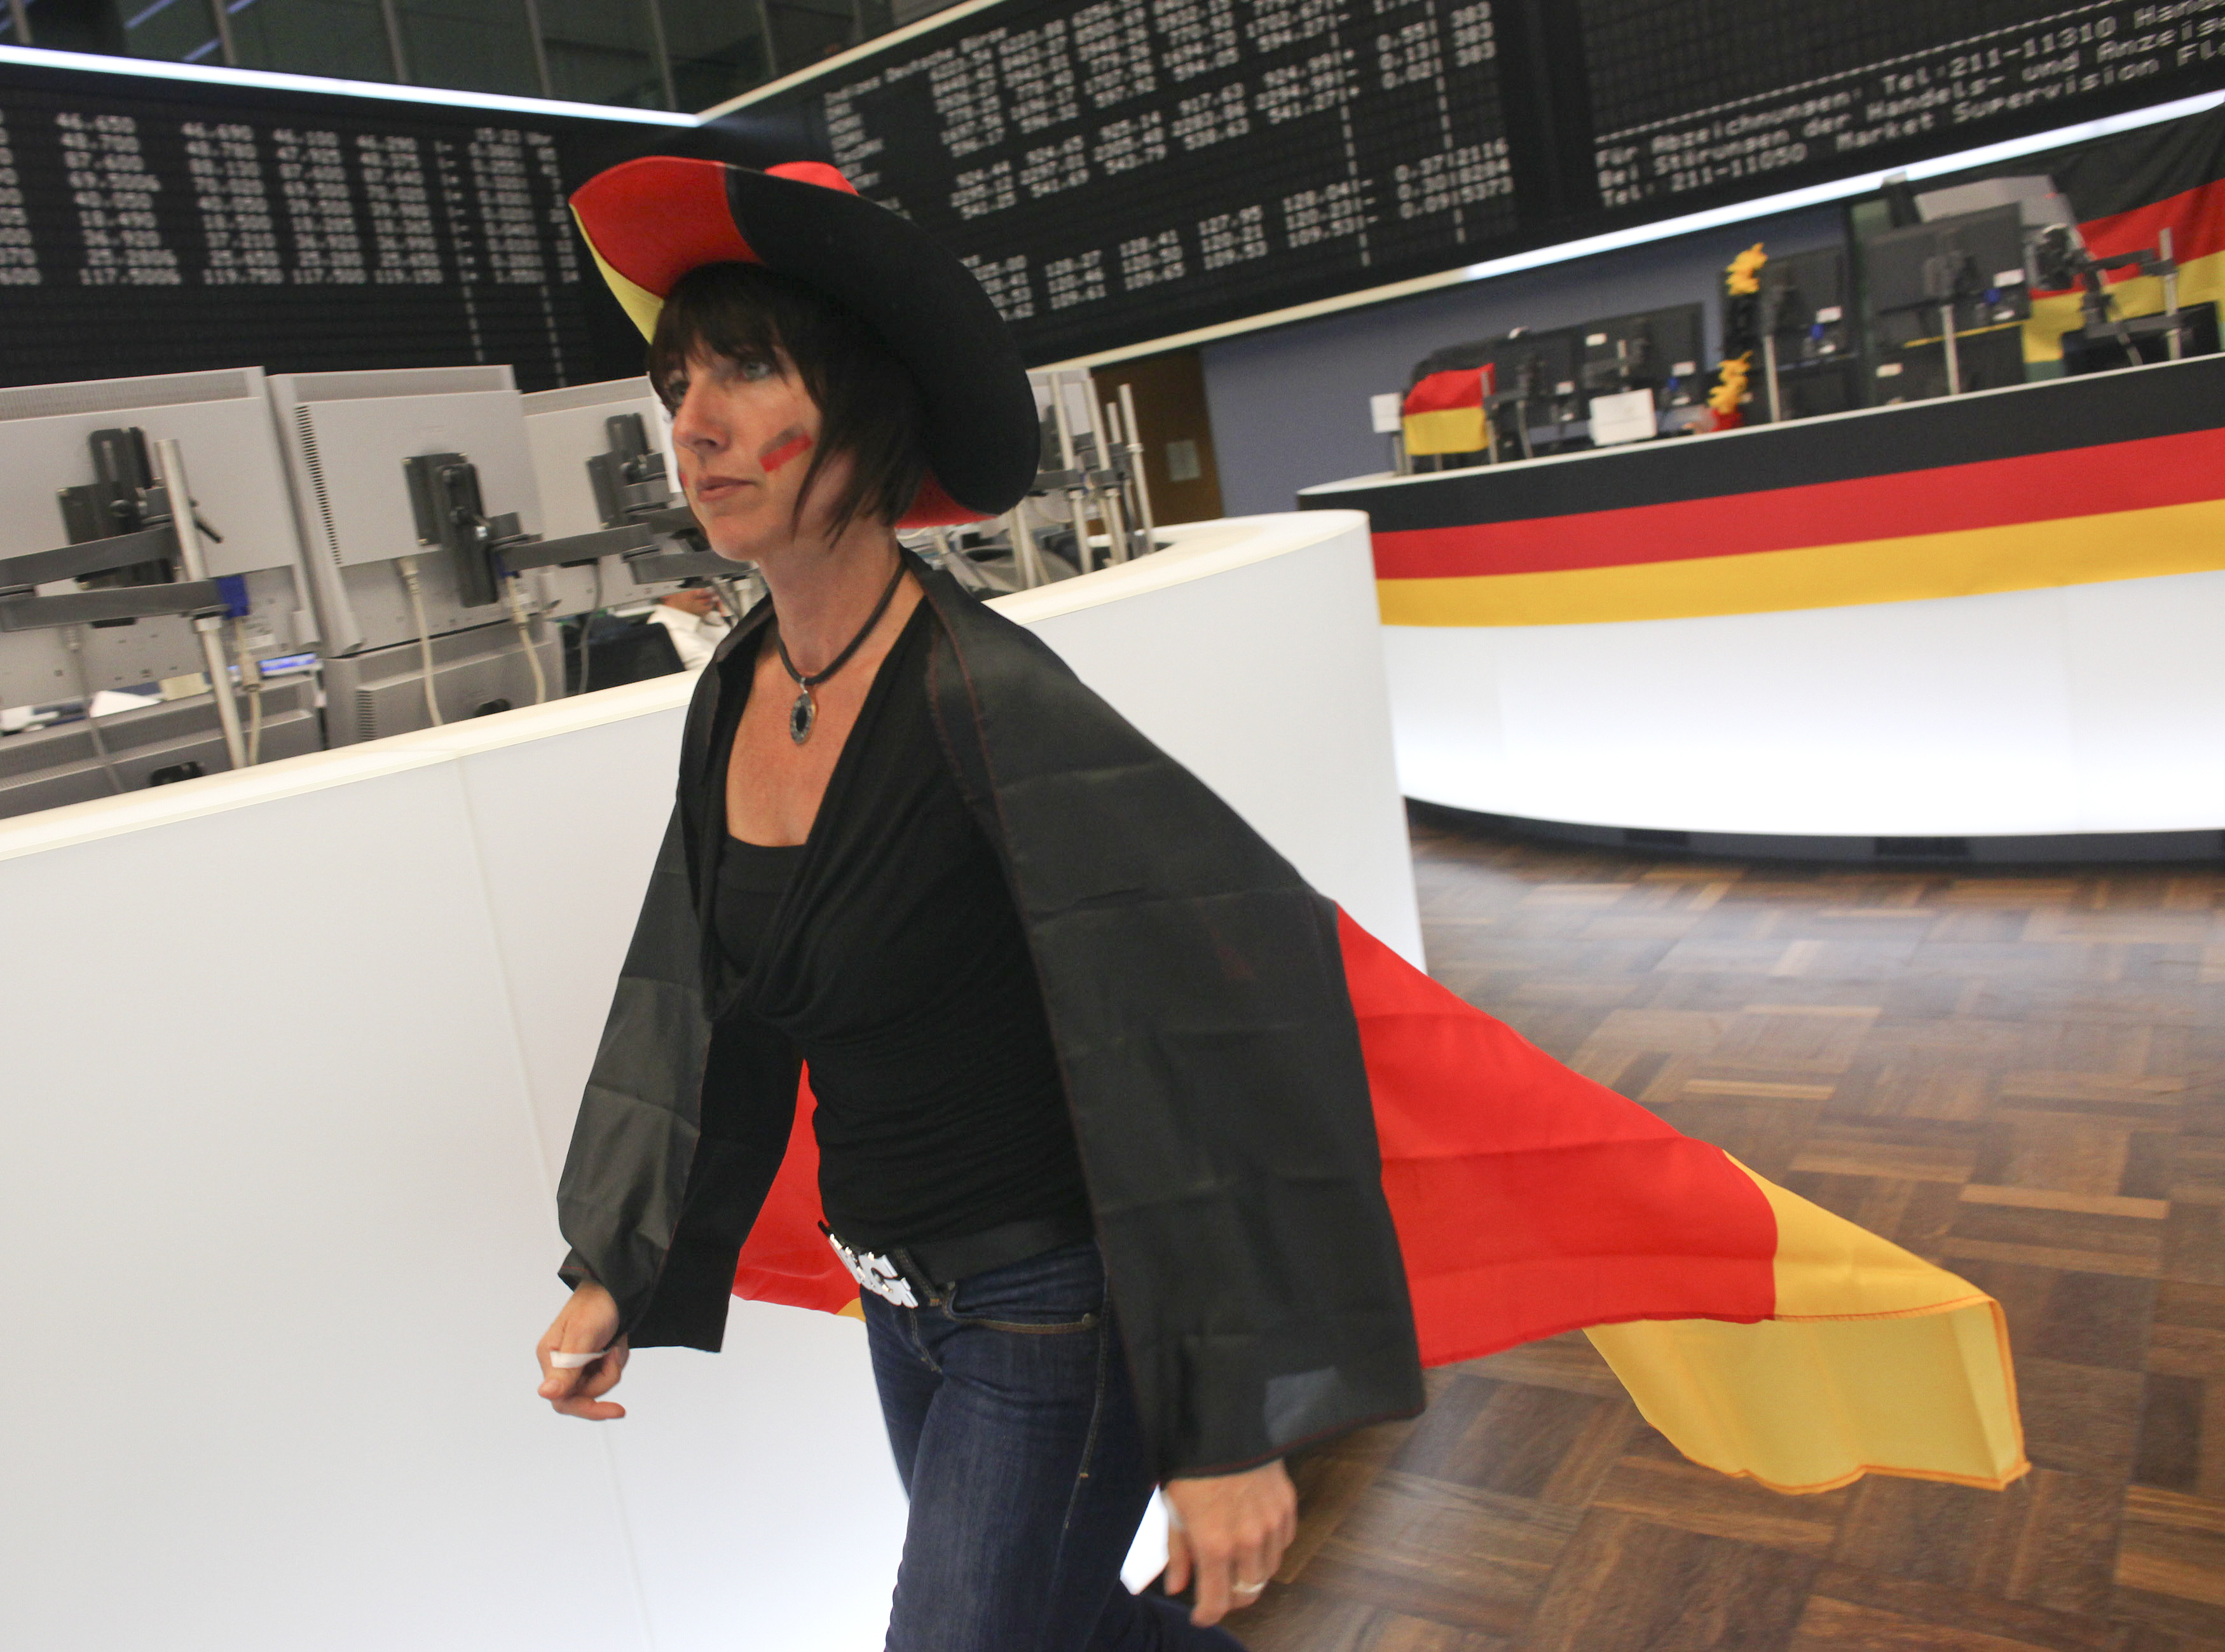 A trader wrapped in a German flag walks across the trading floor of Frankfurt stock exchange during a live broadcast of the 2010 World Cup soccer match between Germany and Serbia in Frankfurt June 18, 2010.  REUTERS/Ralph Orlowski (GERMANY - Tags: SPORT SOCCER WORLD CUP BUSINESS) - RTR2FD2R